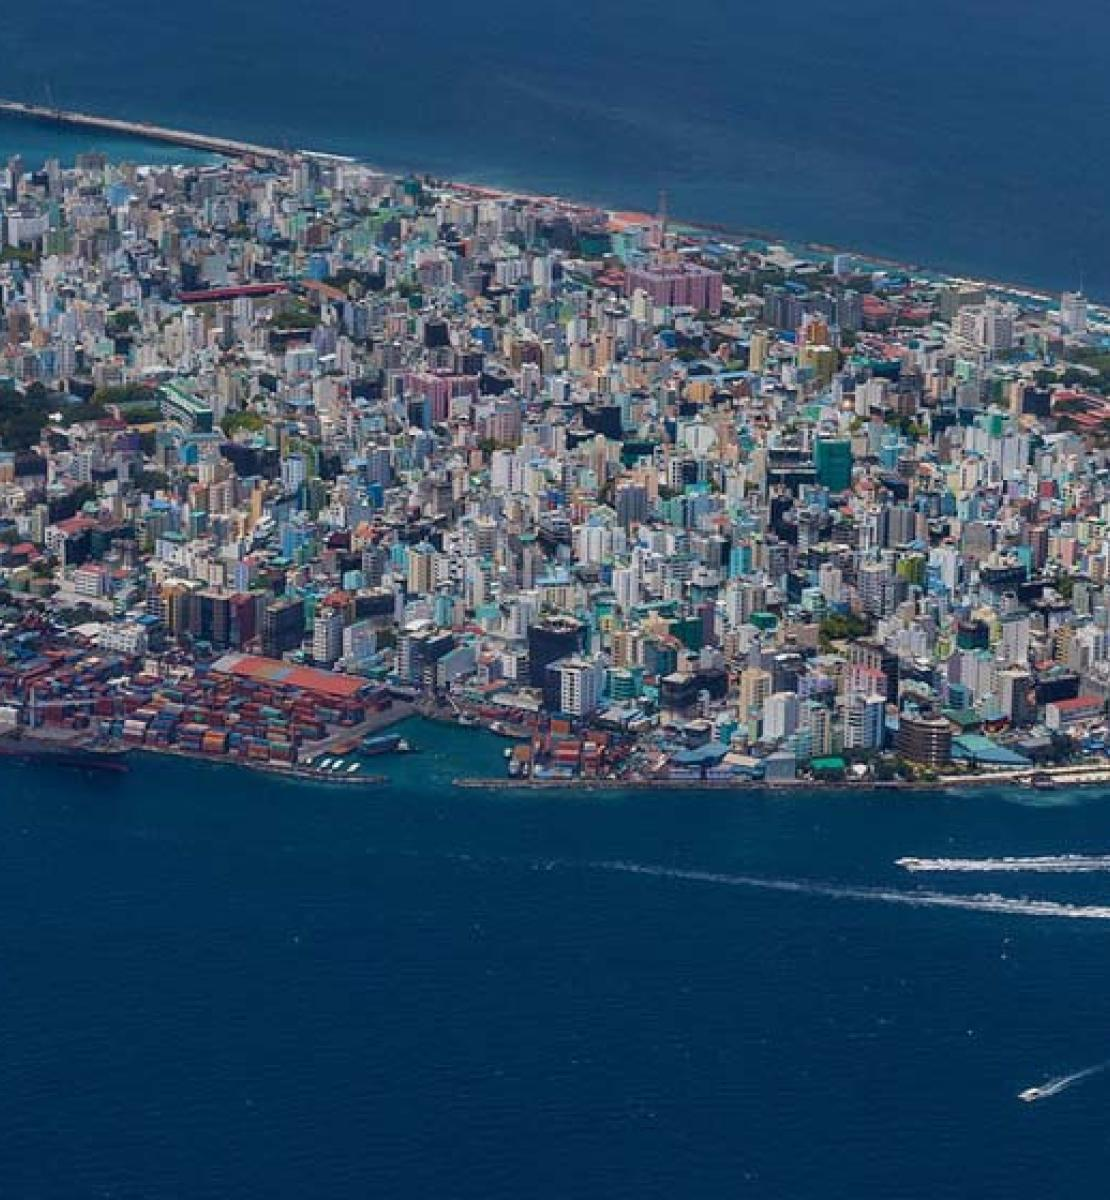 An areal view of the capital city of the Maldives, Malé.